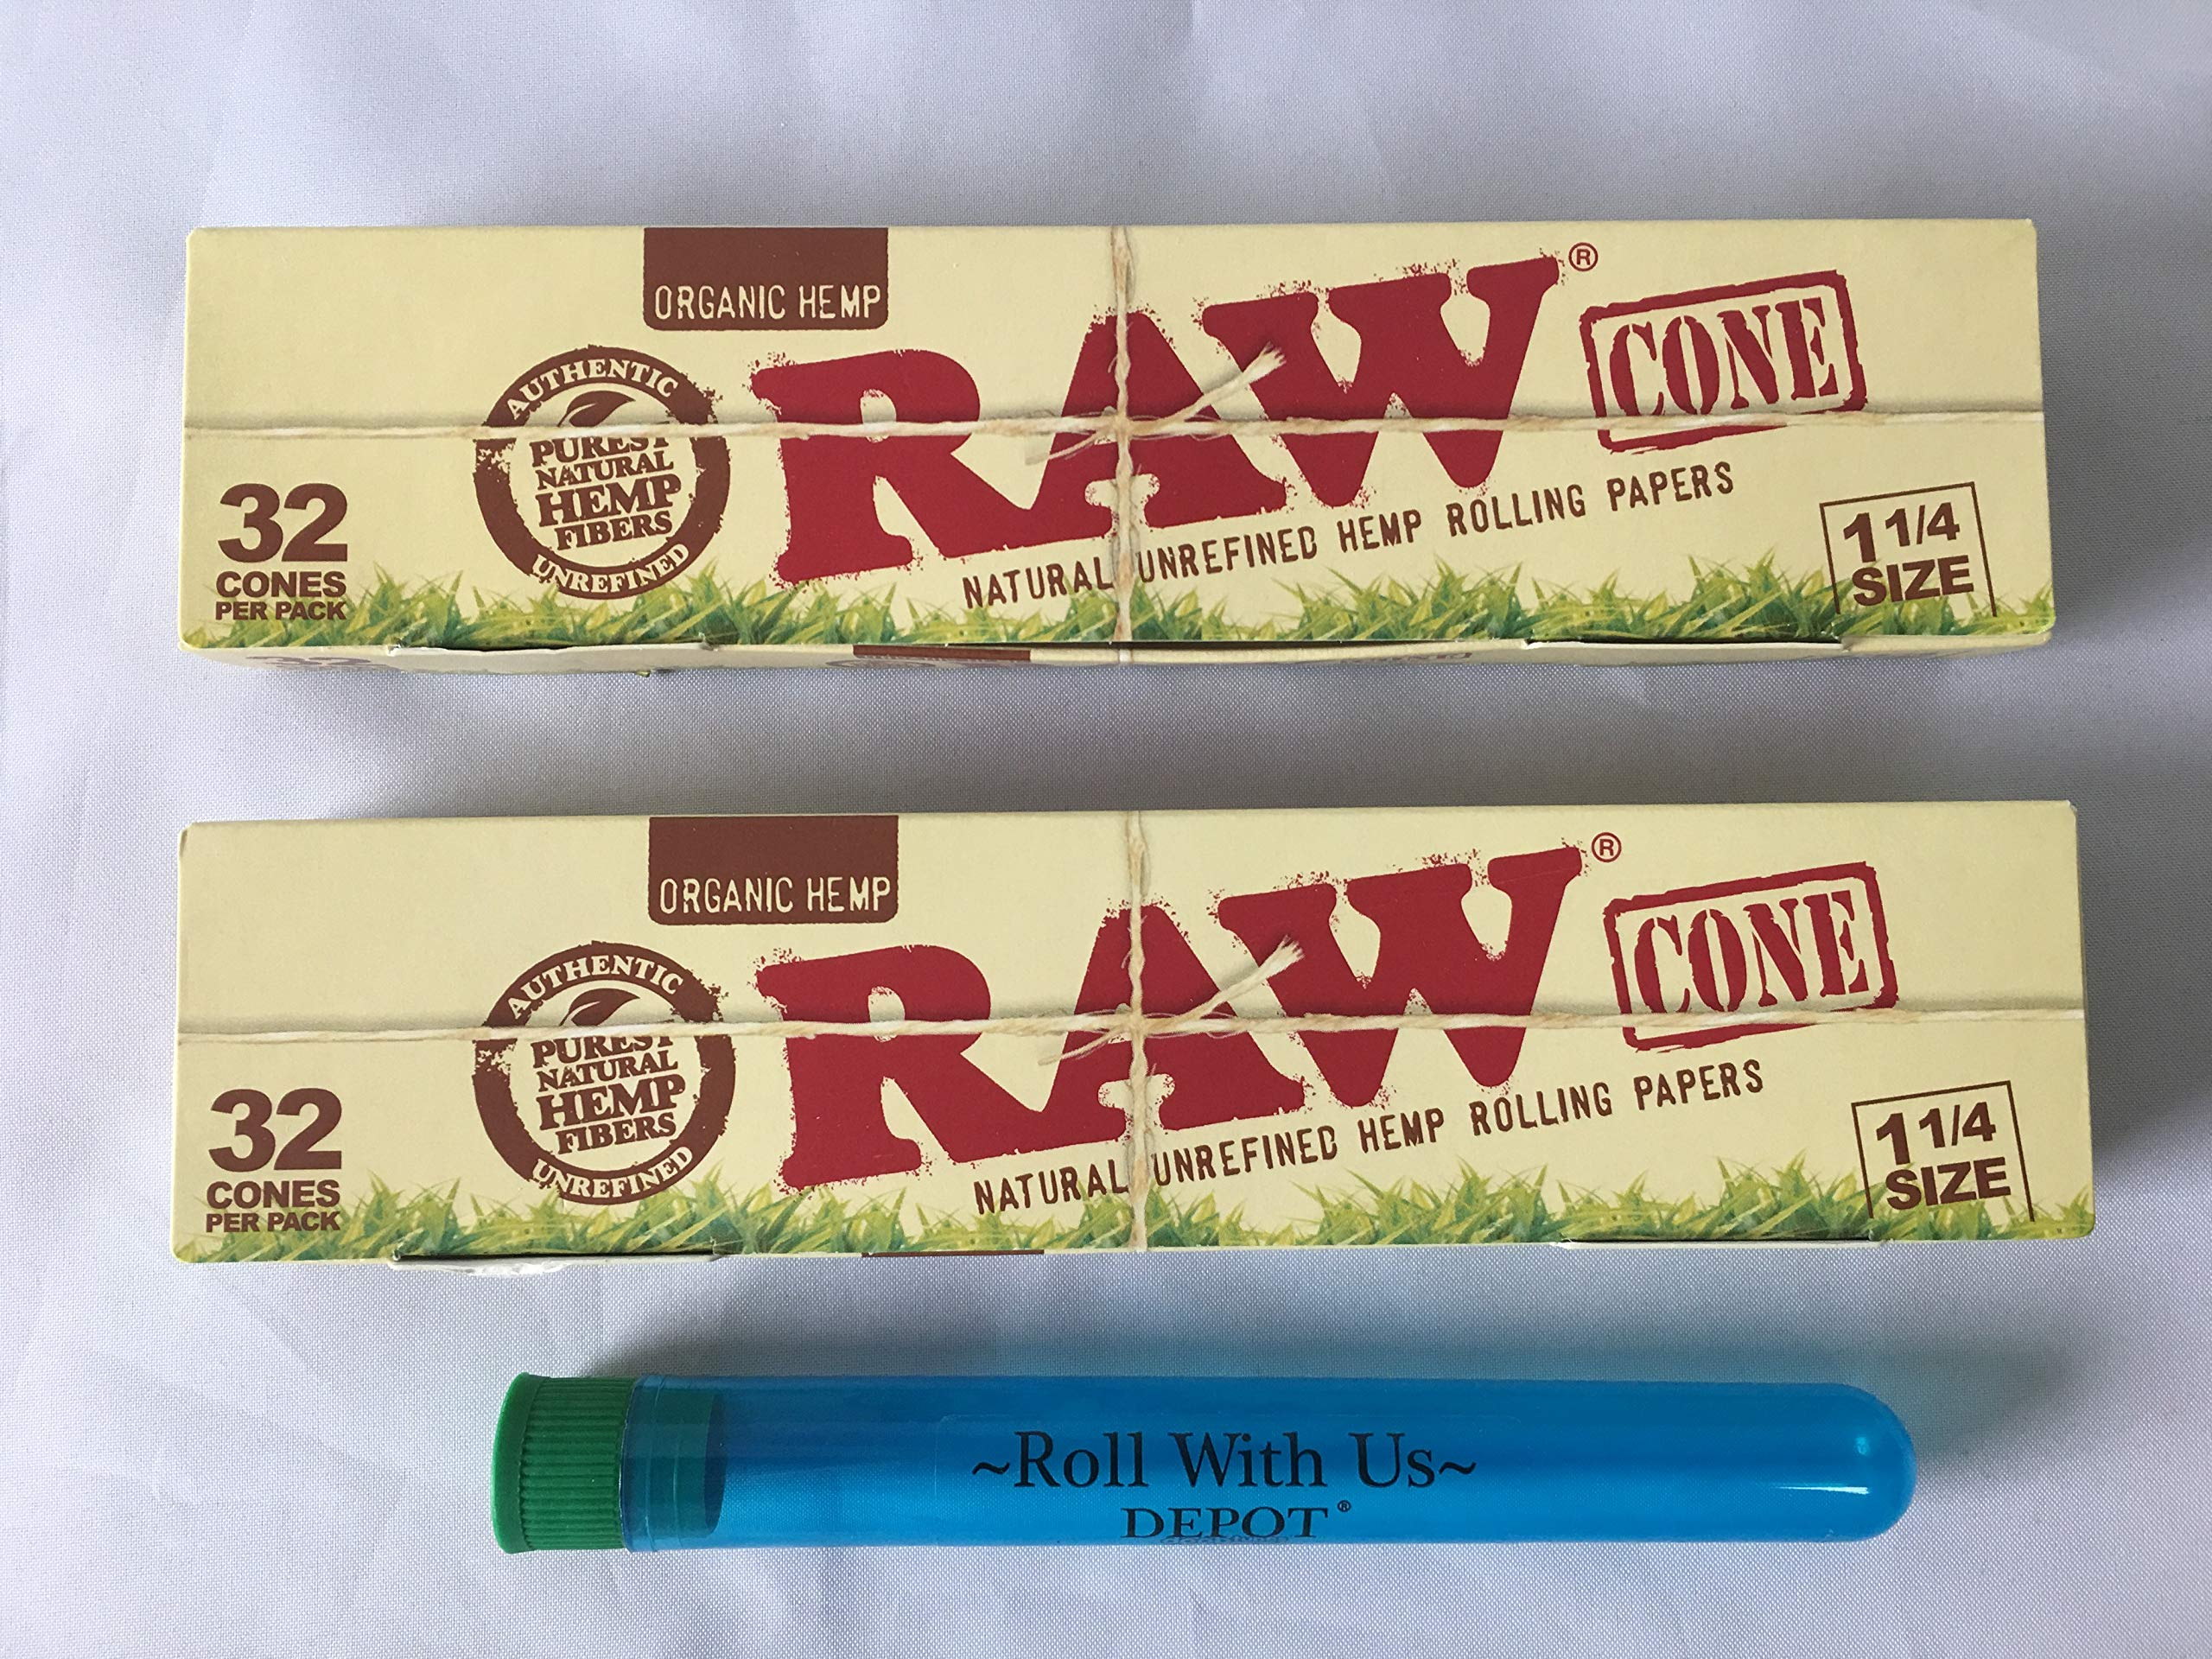 RAW Cones 32 Pack (1 1/4 Size) Organic Pre Rolled Cones (2 Packs of 32 Cones) Includes Roll with Us Doobtube by Roll With Us Depot (Image #1)